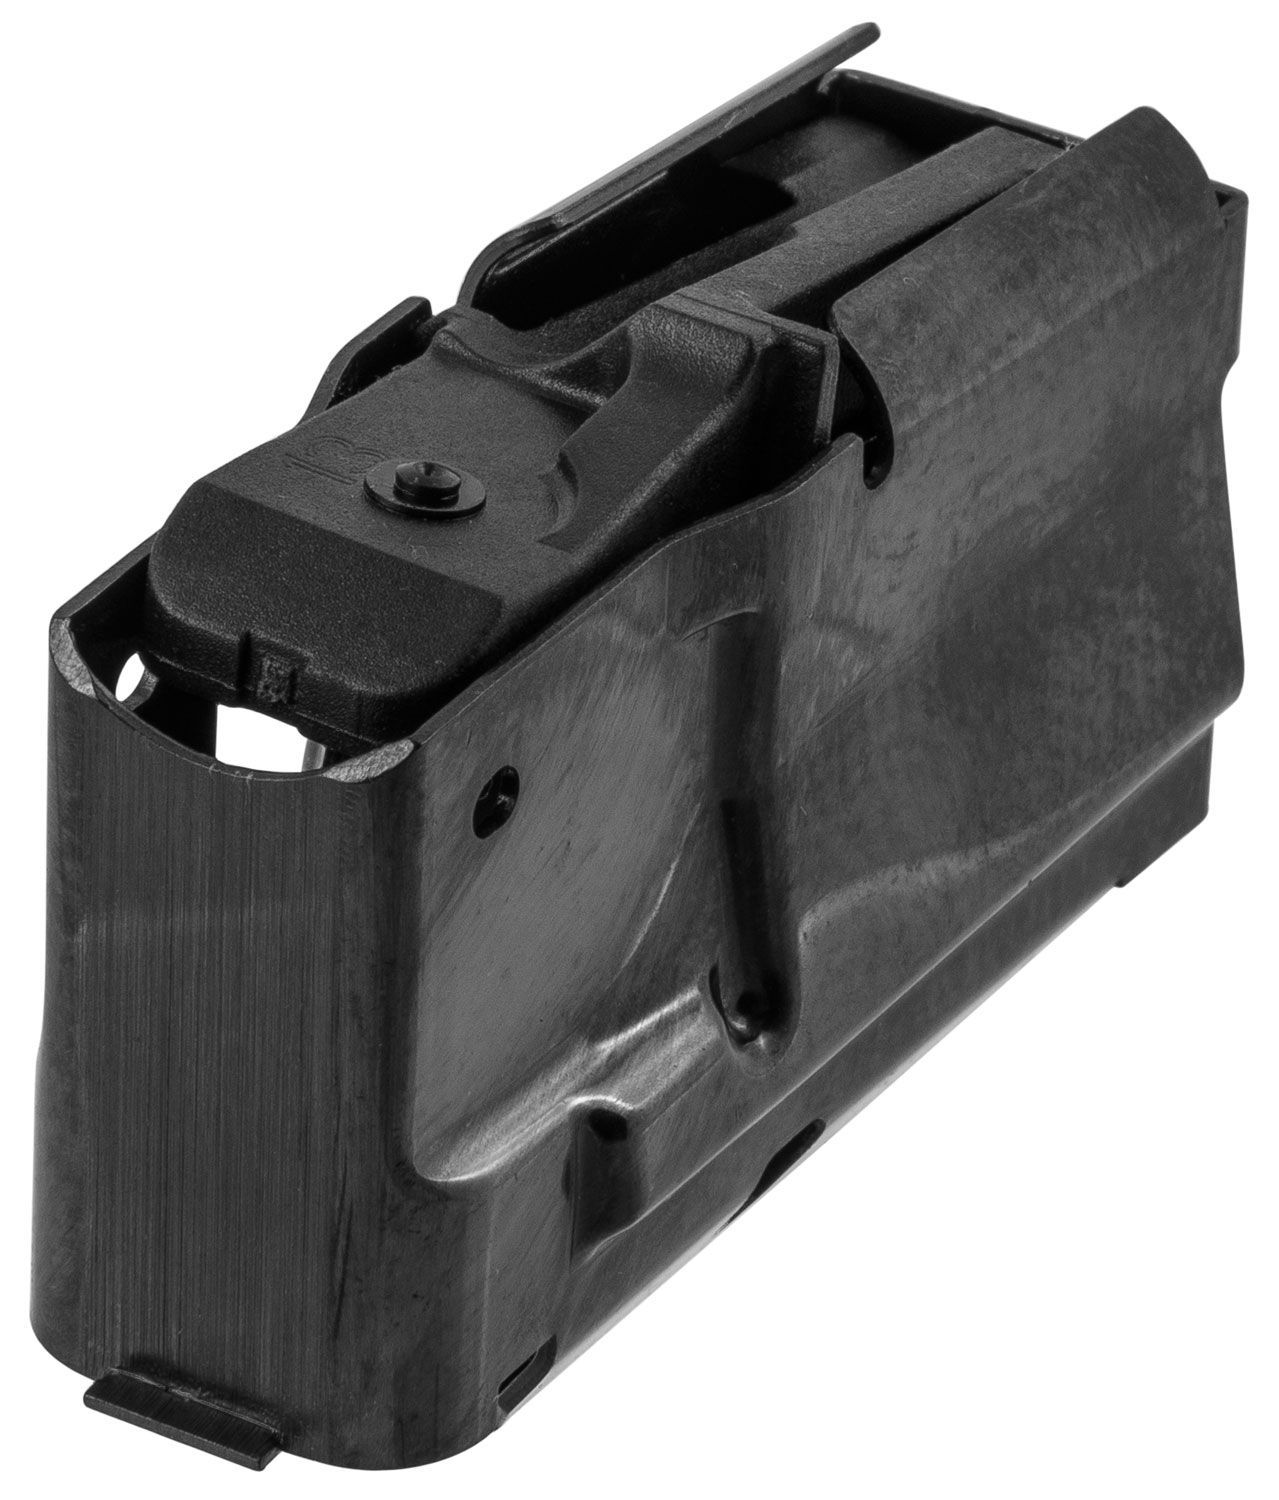 Browning MK2 270,7mm,300WSM Shortrack Magazine